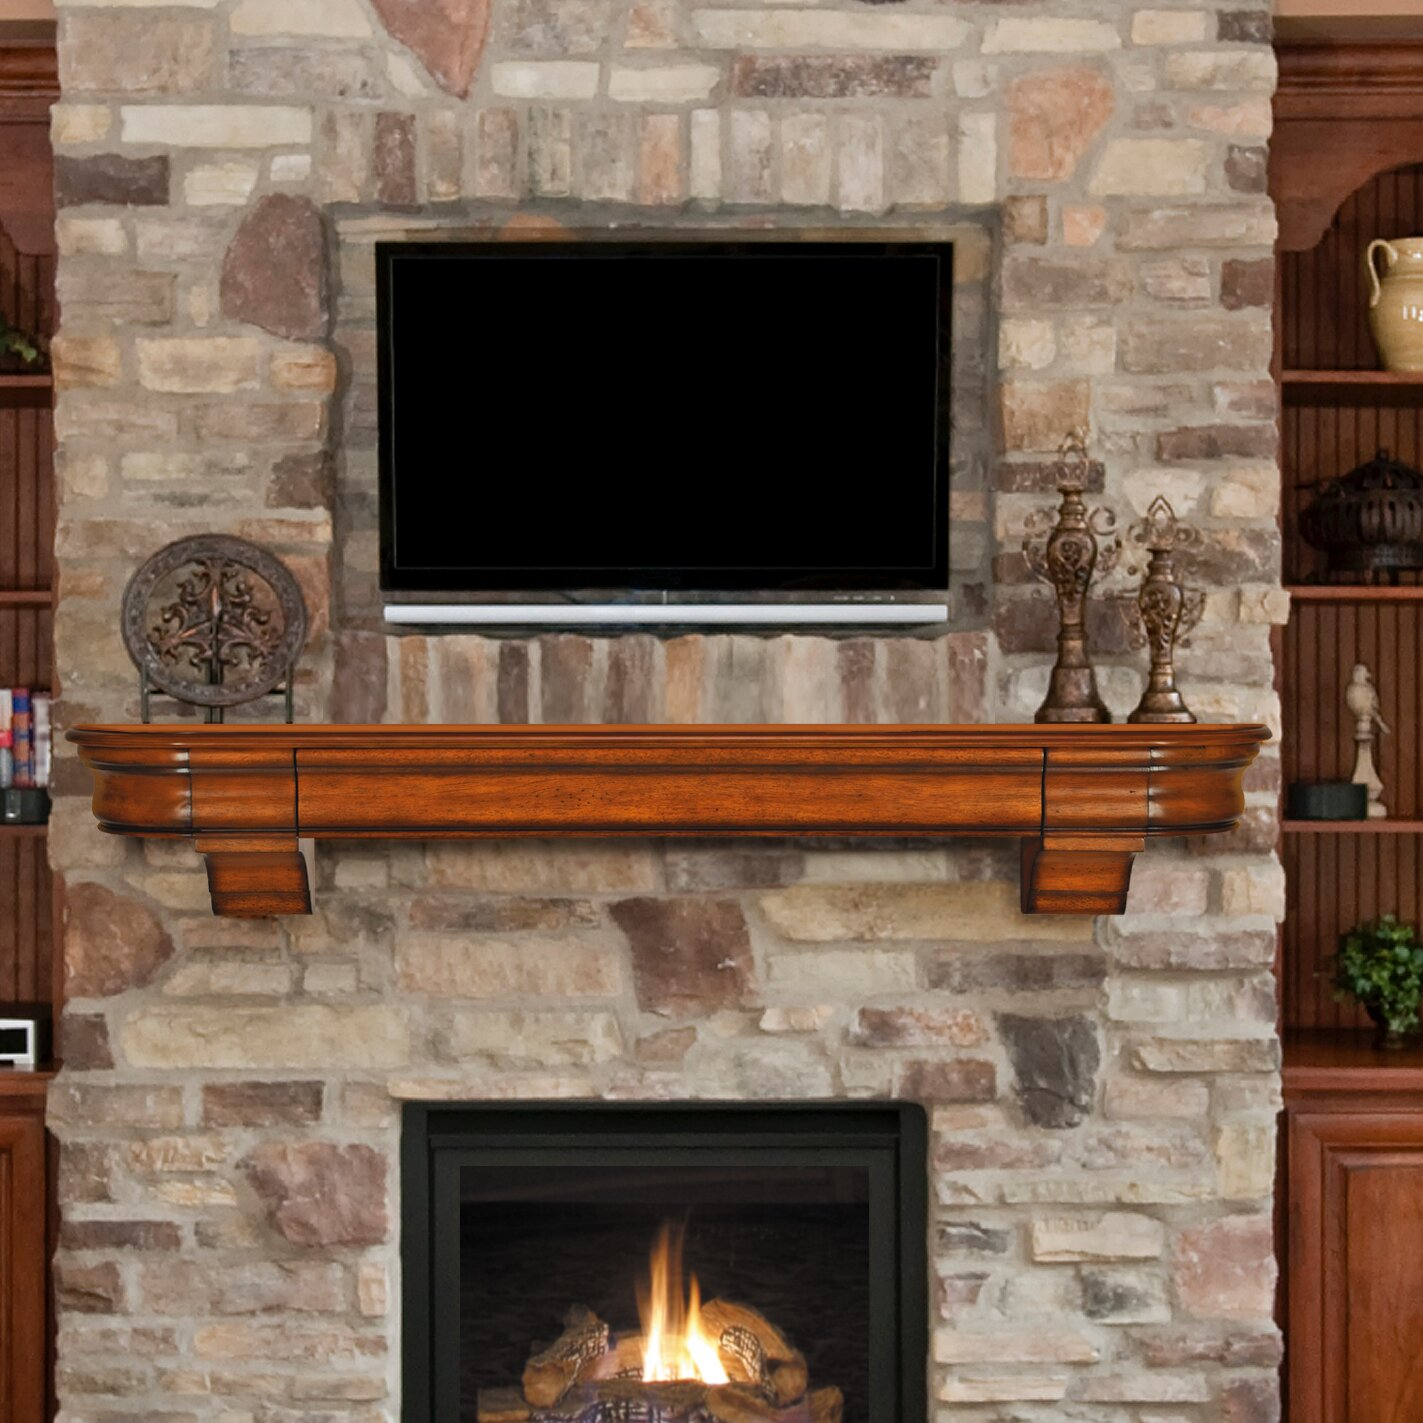 Cabinet Mantel: Pearl Mantels Abingdon Mantel Shelf & Reviews